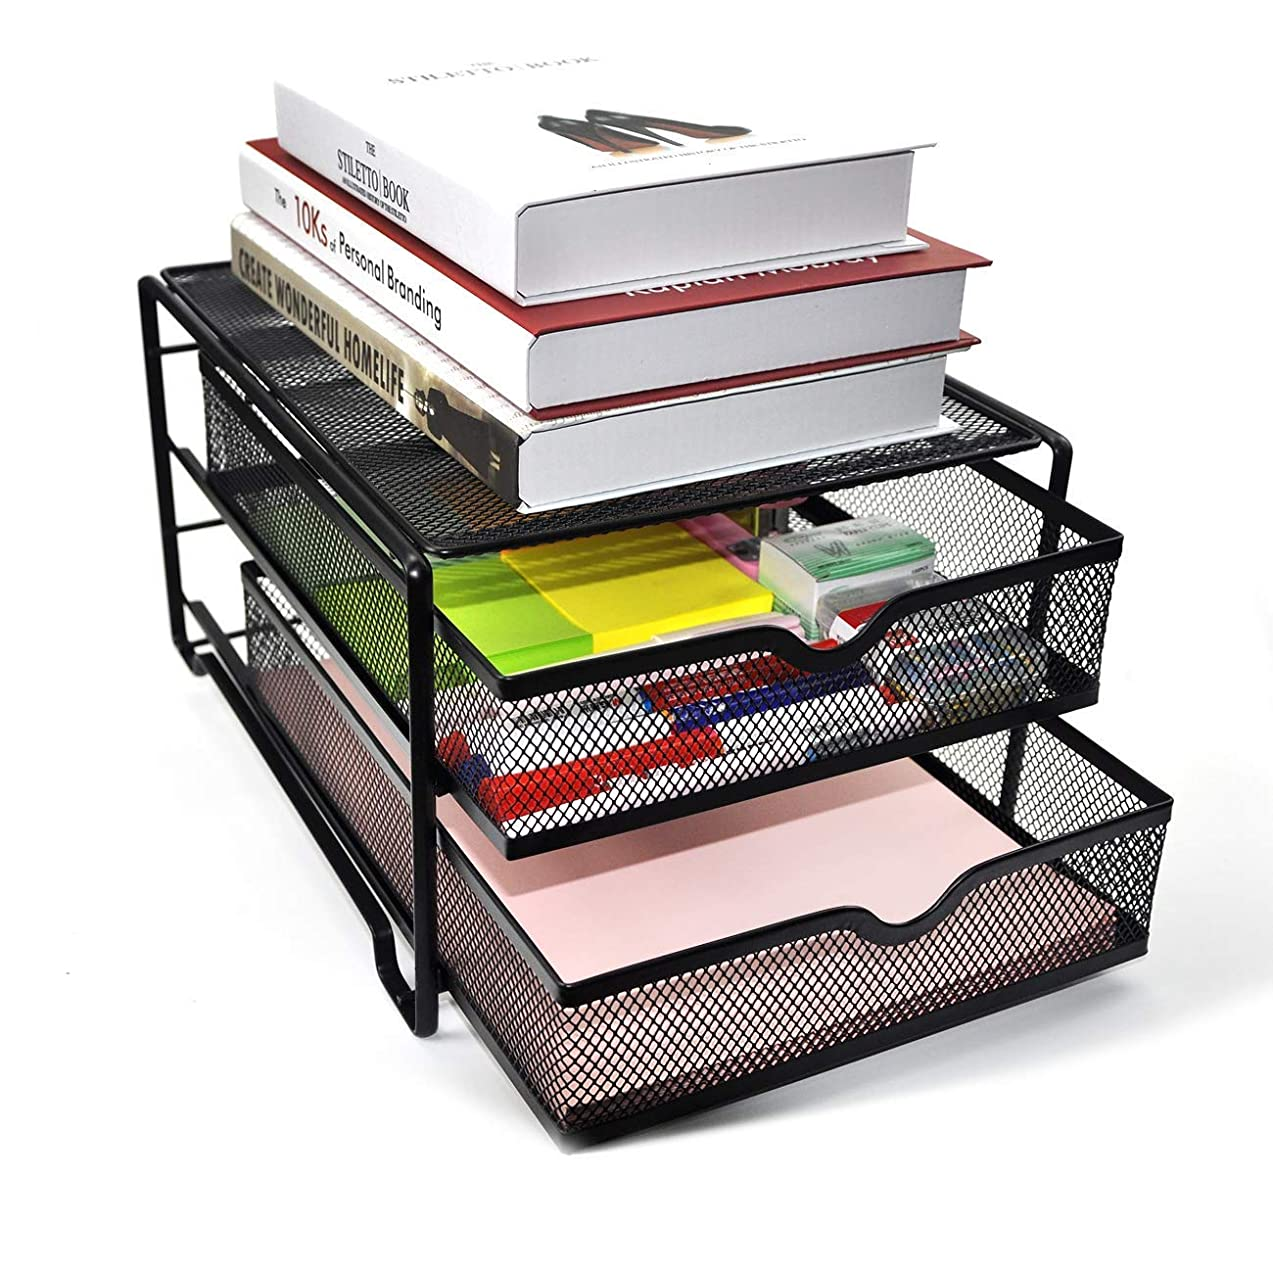 Reliatronic Upgraded 2 Tier Desk Organizer, Mesh File Organizer with 2 Drawers, Premium Solid Construction Letter Trays, Black zxkpnzzv285